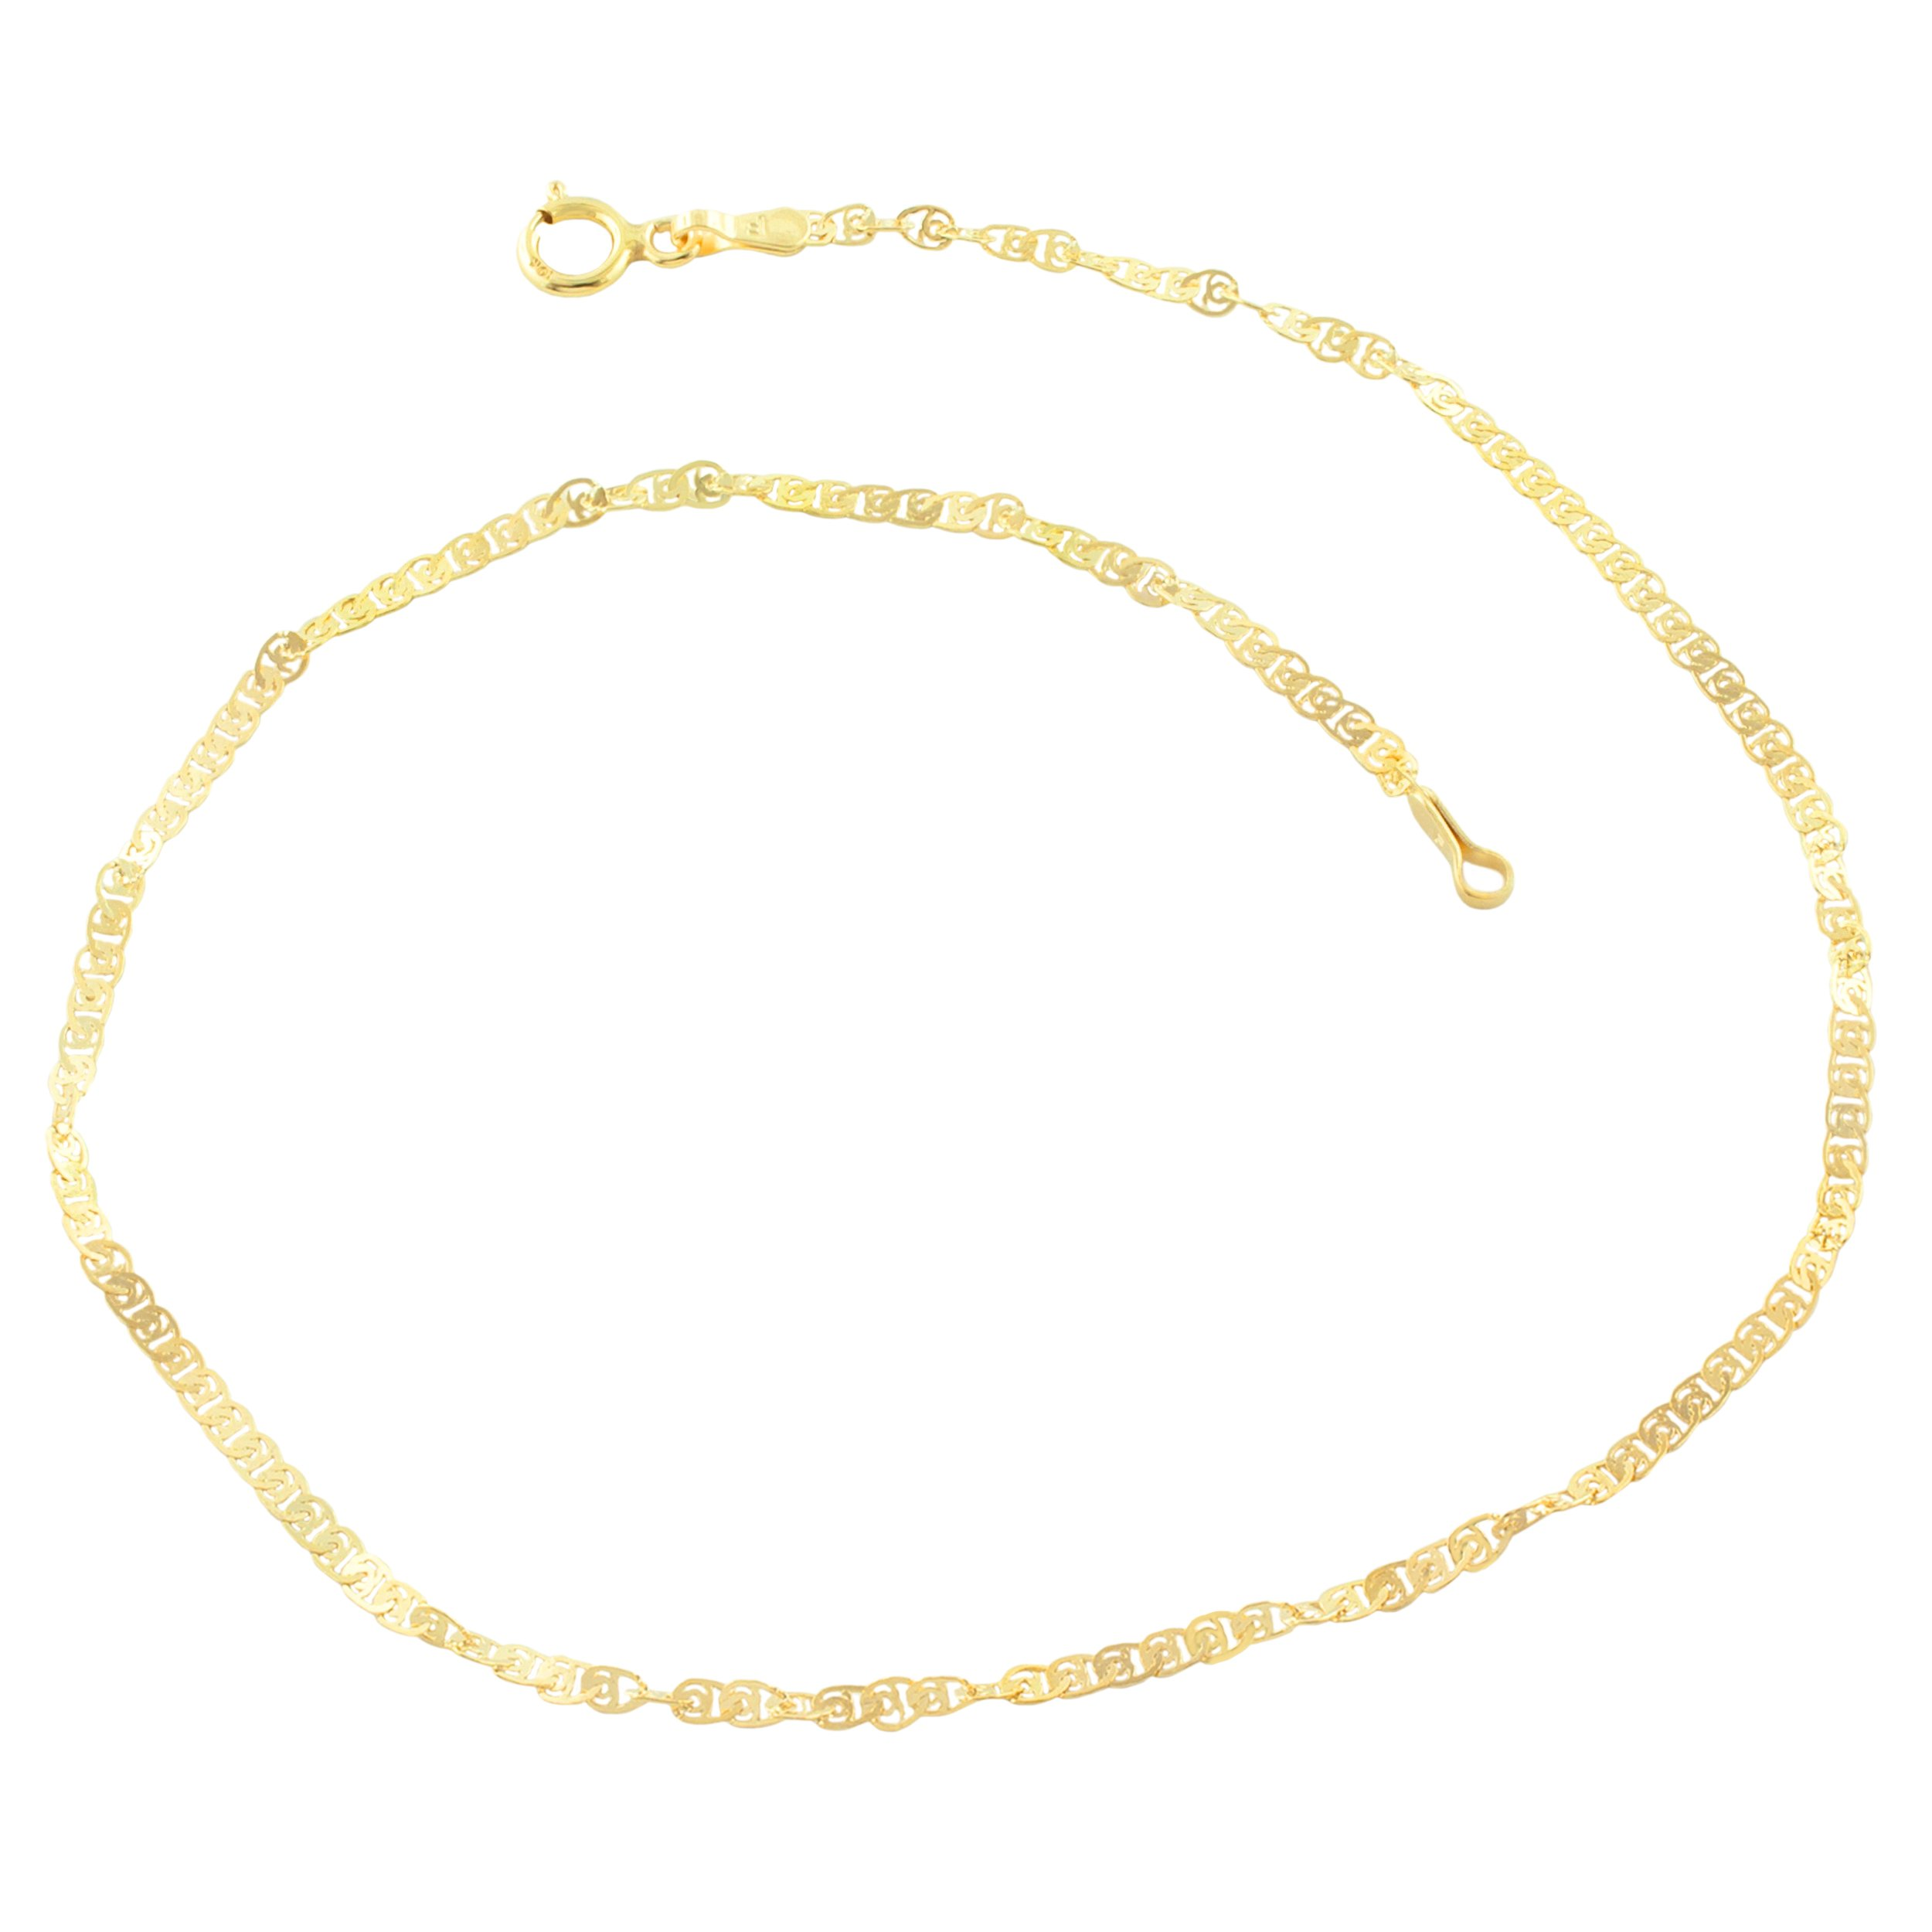 10k Yellow Gold Flat Twisted Love Link Anklet (1.85mm, 10 inch)